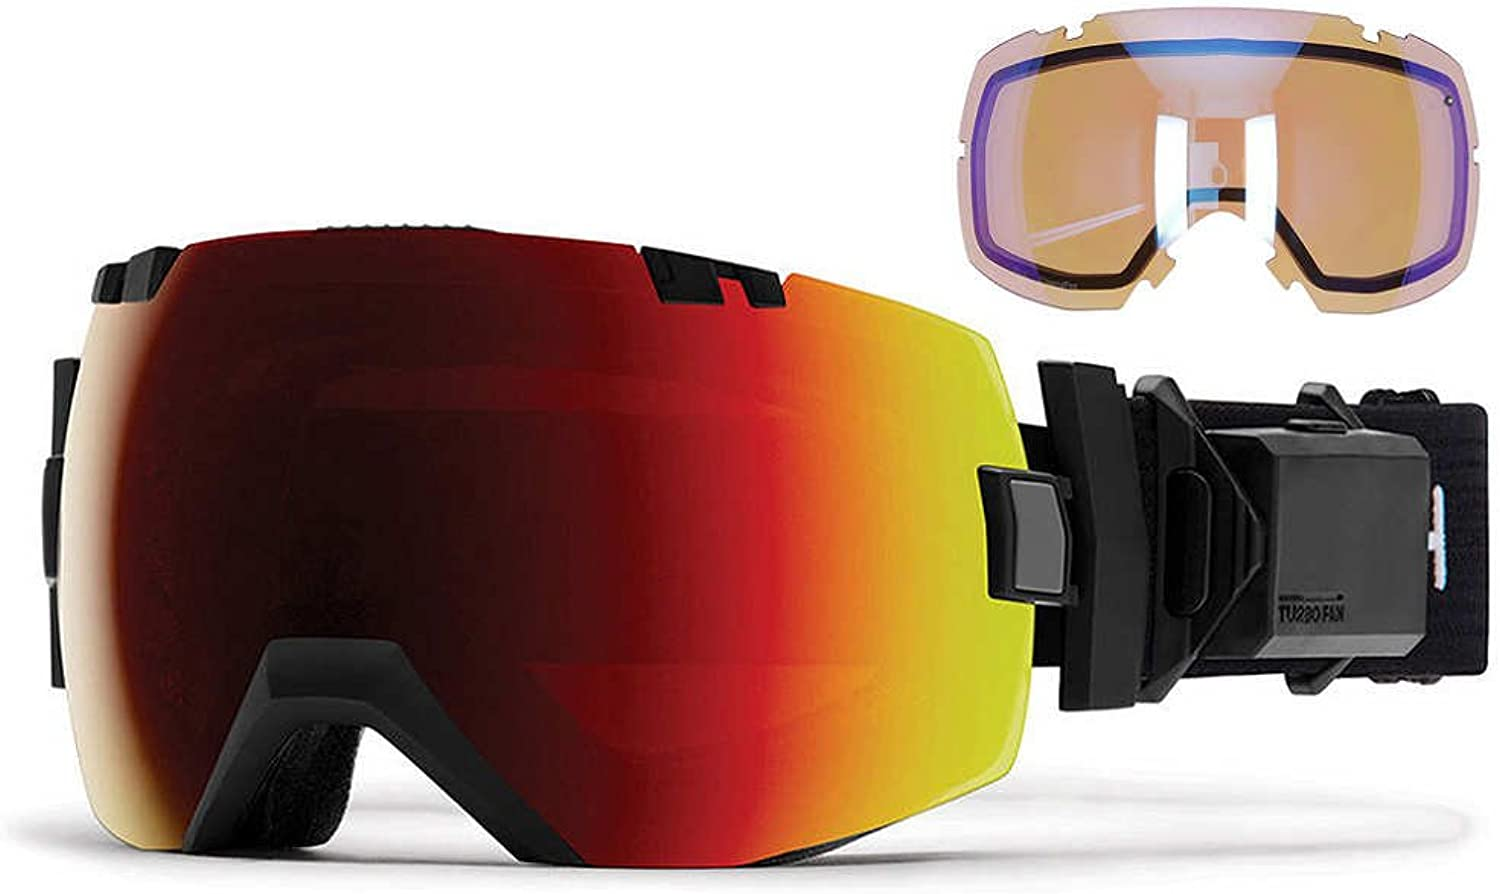 Smith Optics I OX Turno Fam Snow Goggle Black with CP Sun Red Mirror and CP Storm Lens